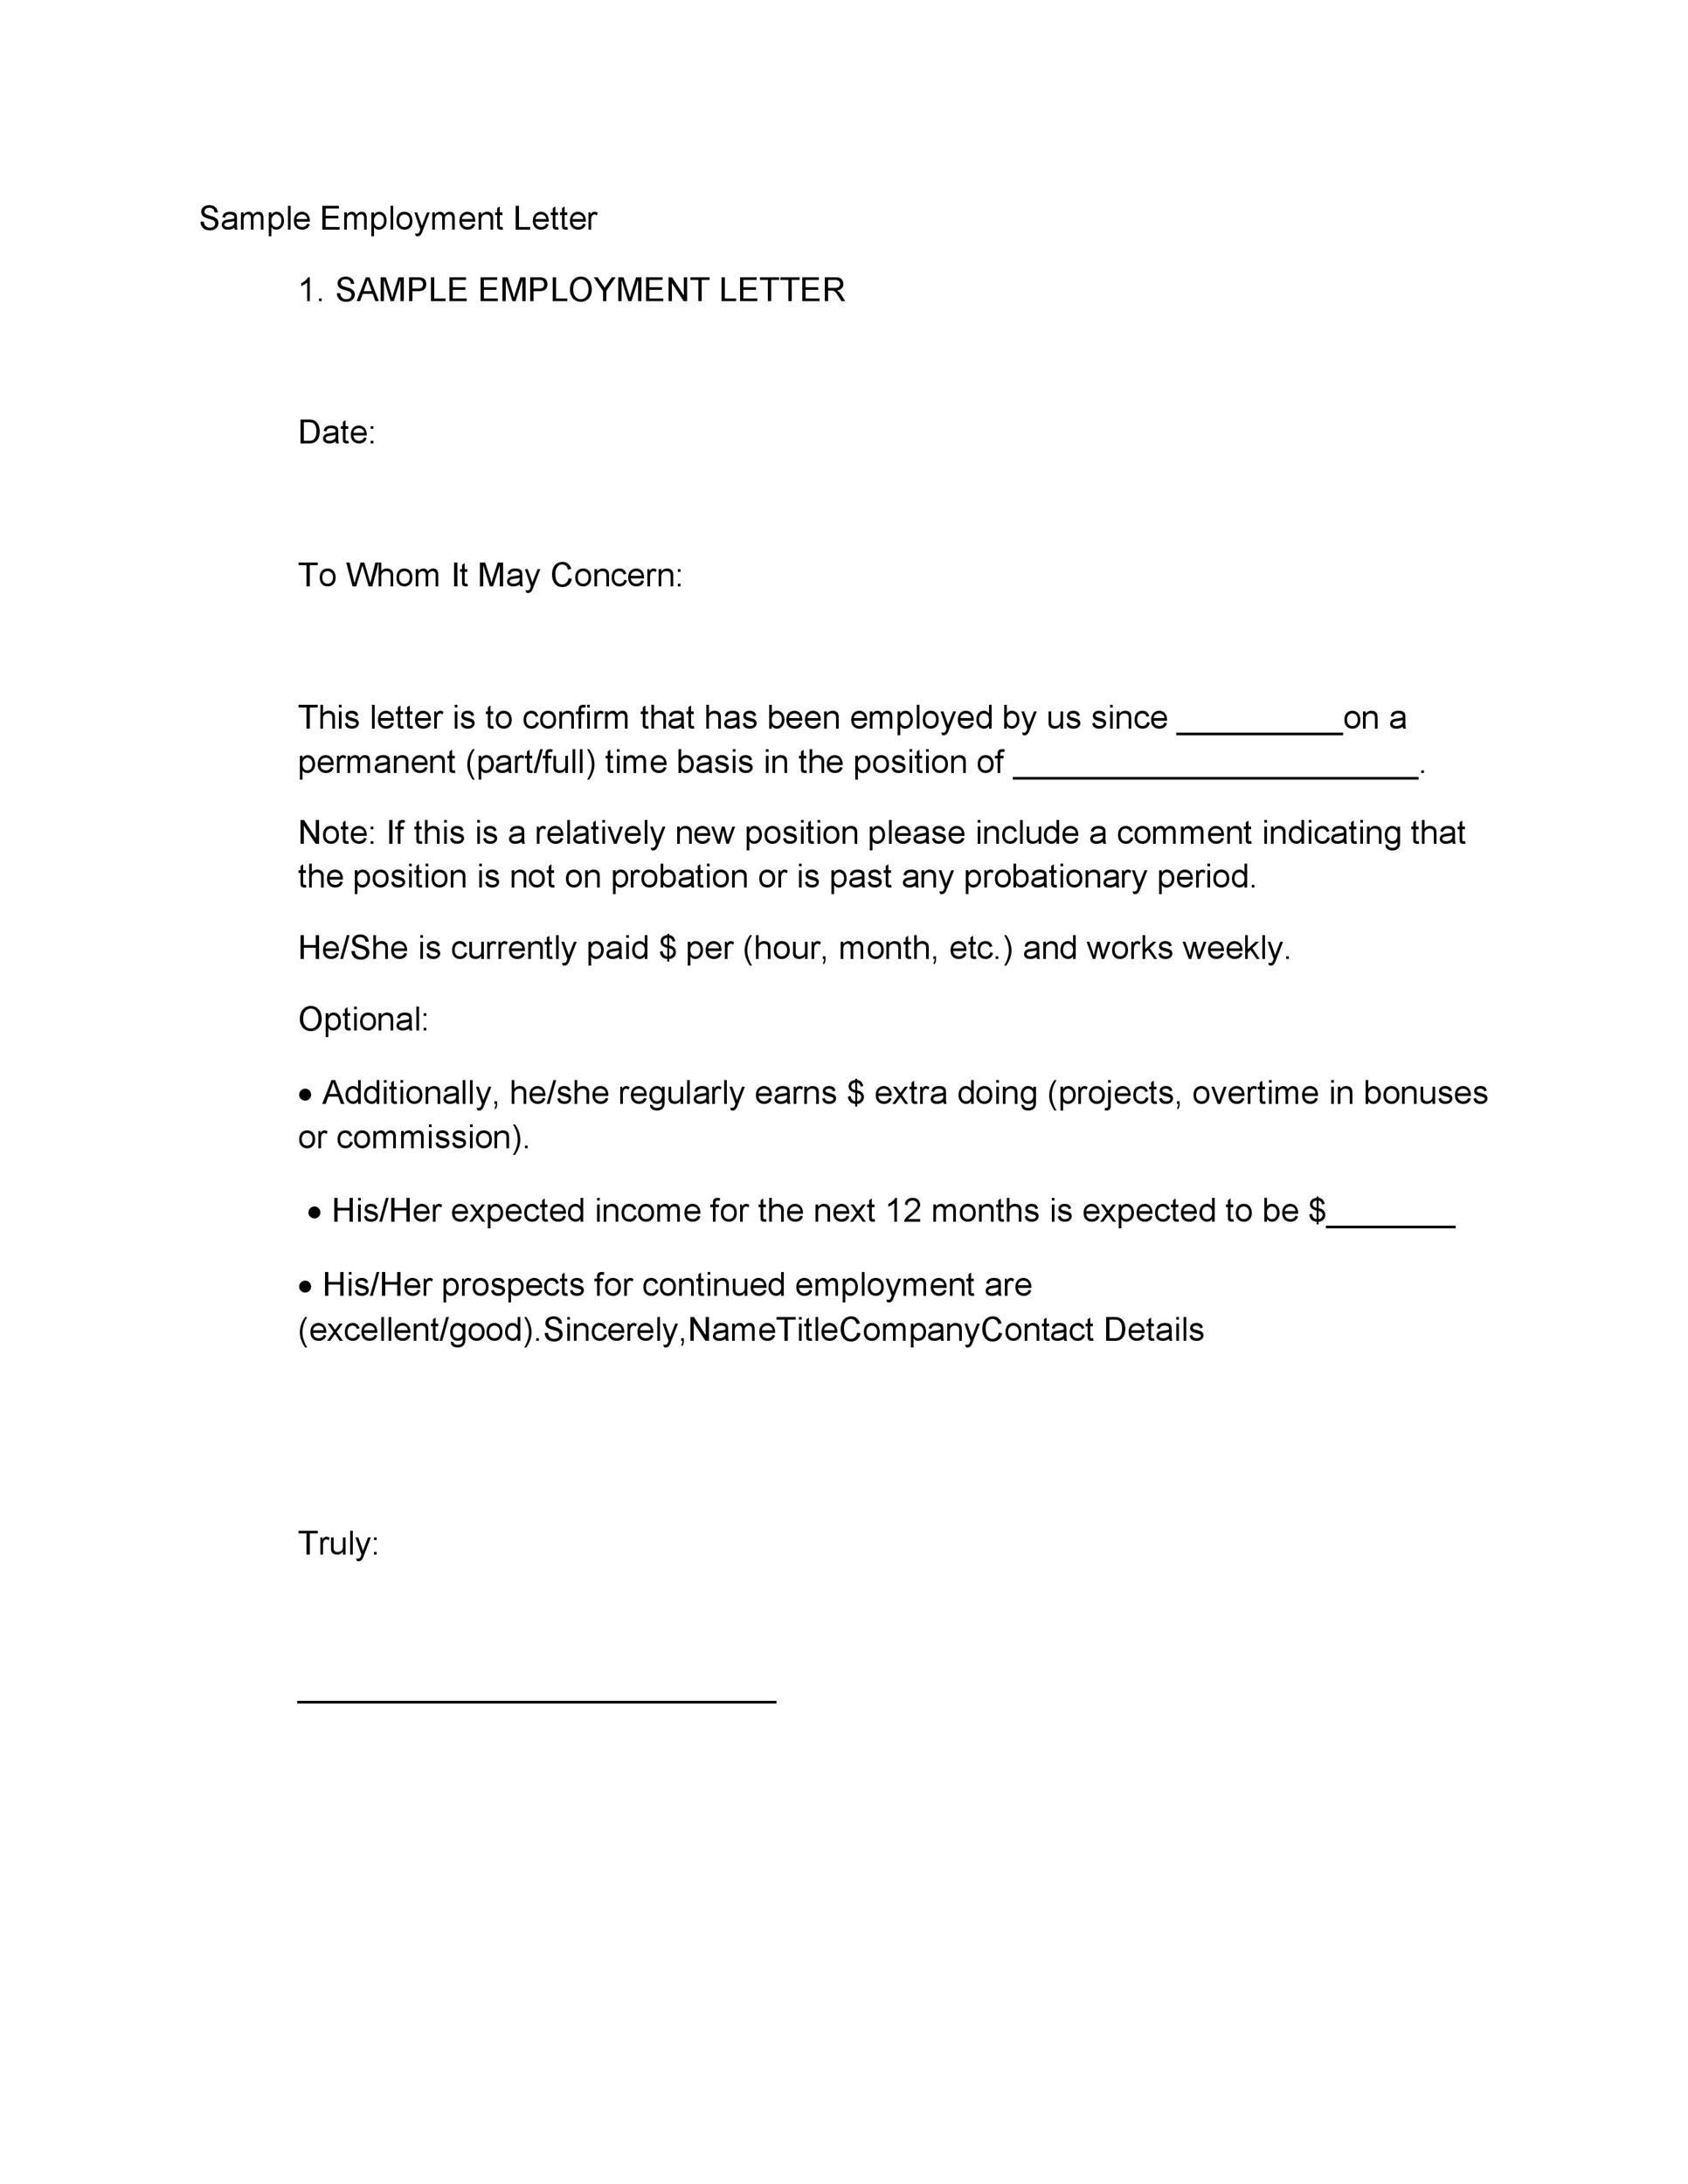 Employment Verification Form Questions | Research Proposal Sample Mit